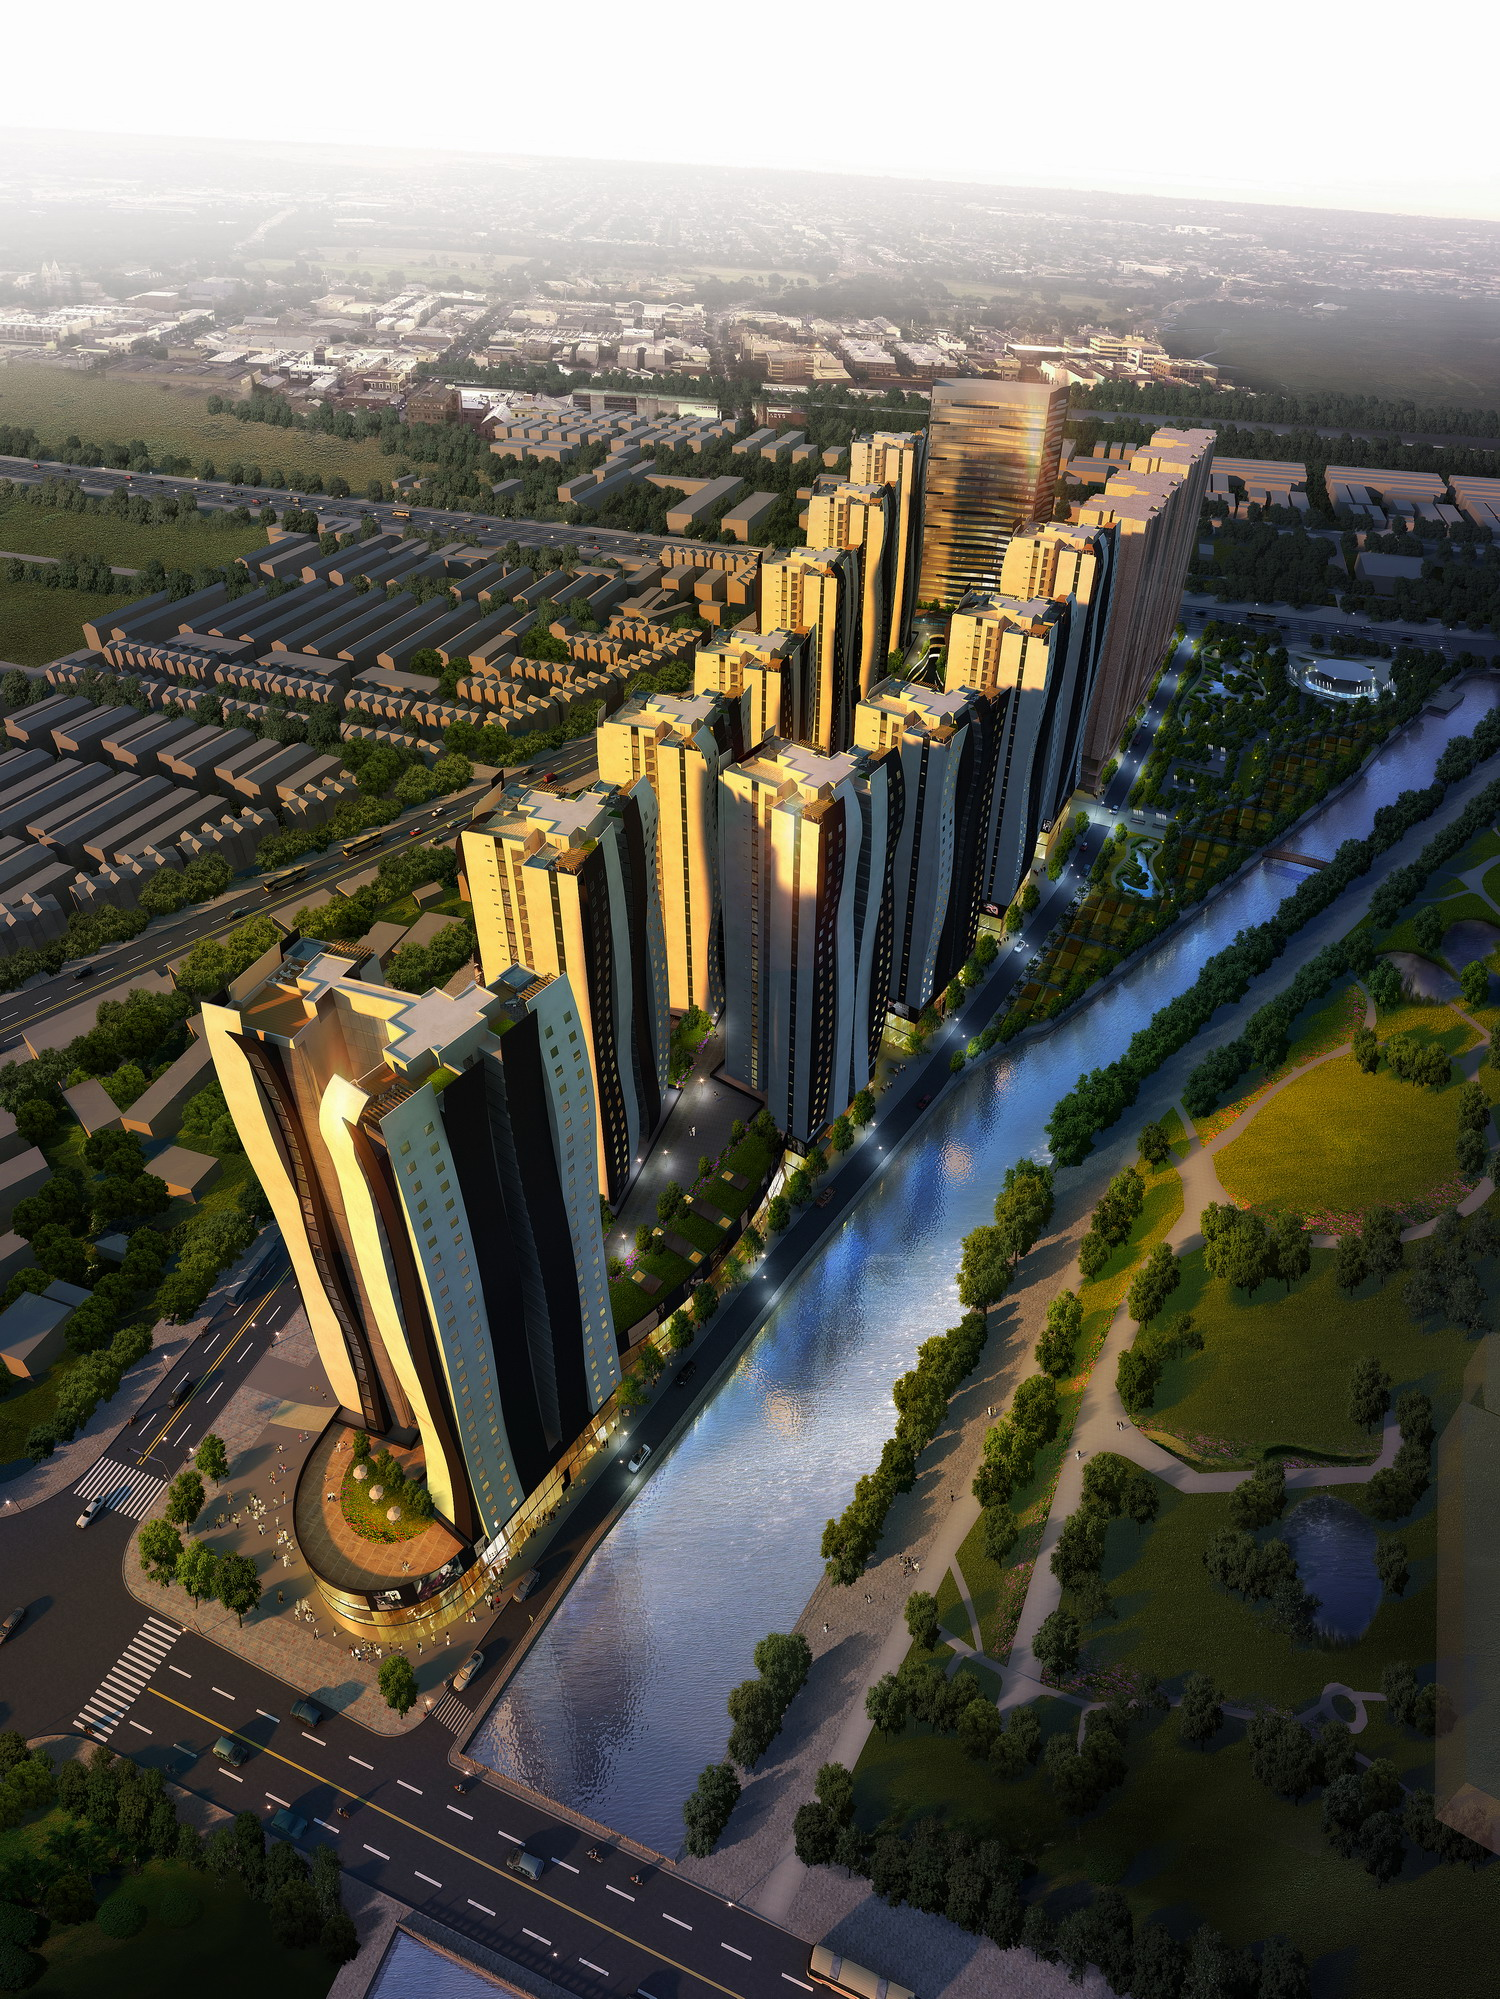 Jiyuan China  city pictures gallery : New Mixed use Masterplan in Jiyuan, China eVolo | Architecture ...